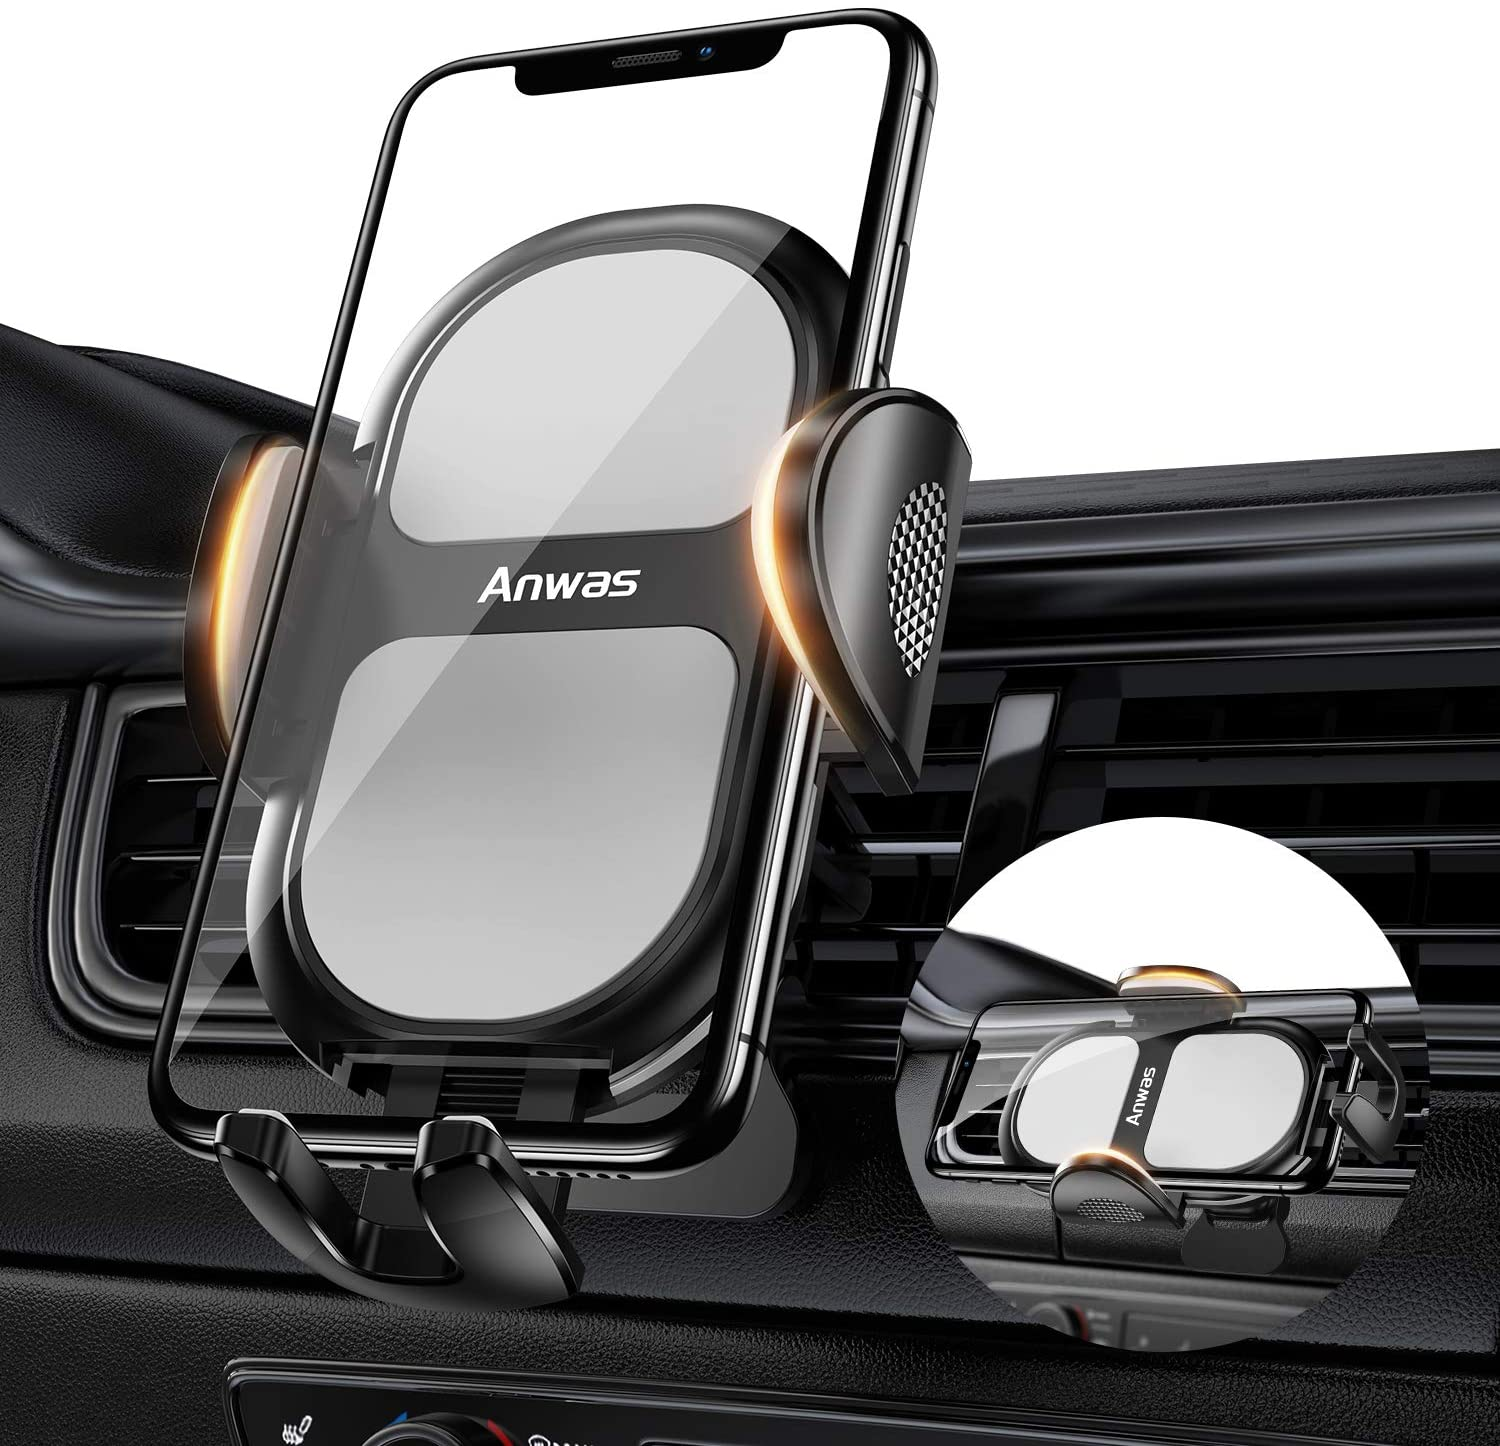 Car Phone Mount, Anwas Universal Cell Phone Holder for Car [2020 Upgrade] Smartphone Mount for Air Vent 360°Rotation Fit for iPhone 11 Pro Max XR XS X 8 8Plus 7 7Plus SE 6s 6 Galaxy S20 S20+/S10